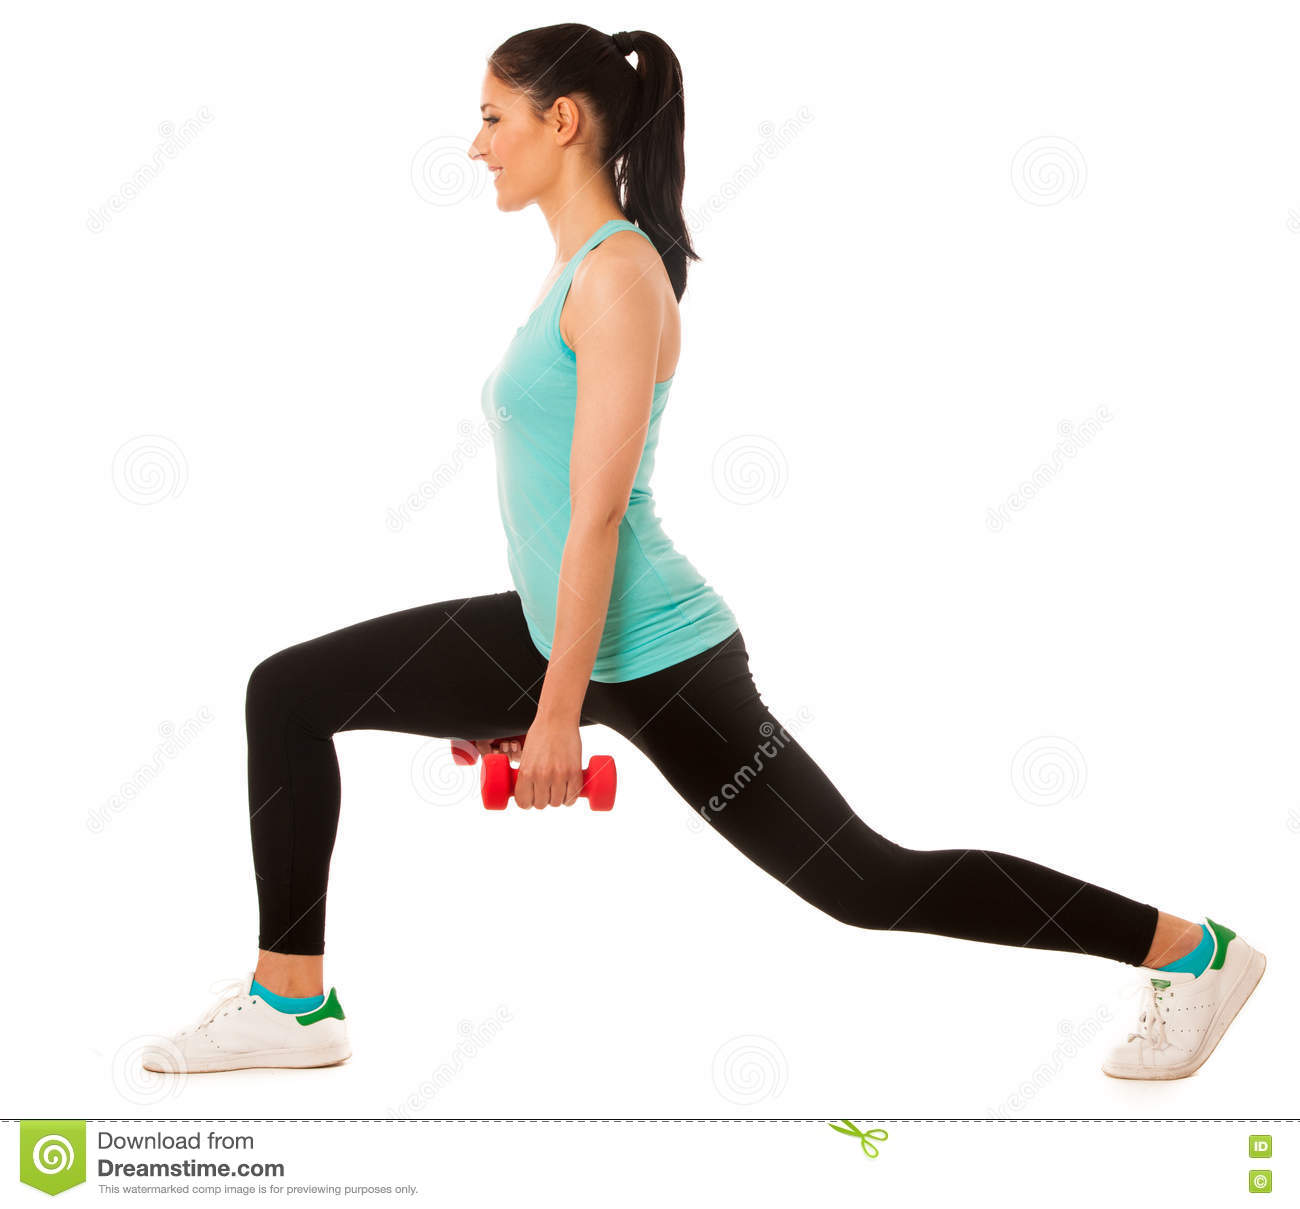 Beautiful young woman doing lunge exercise with red dumbbells in